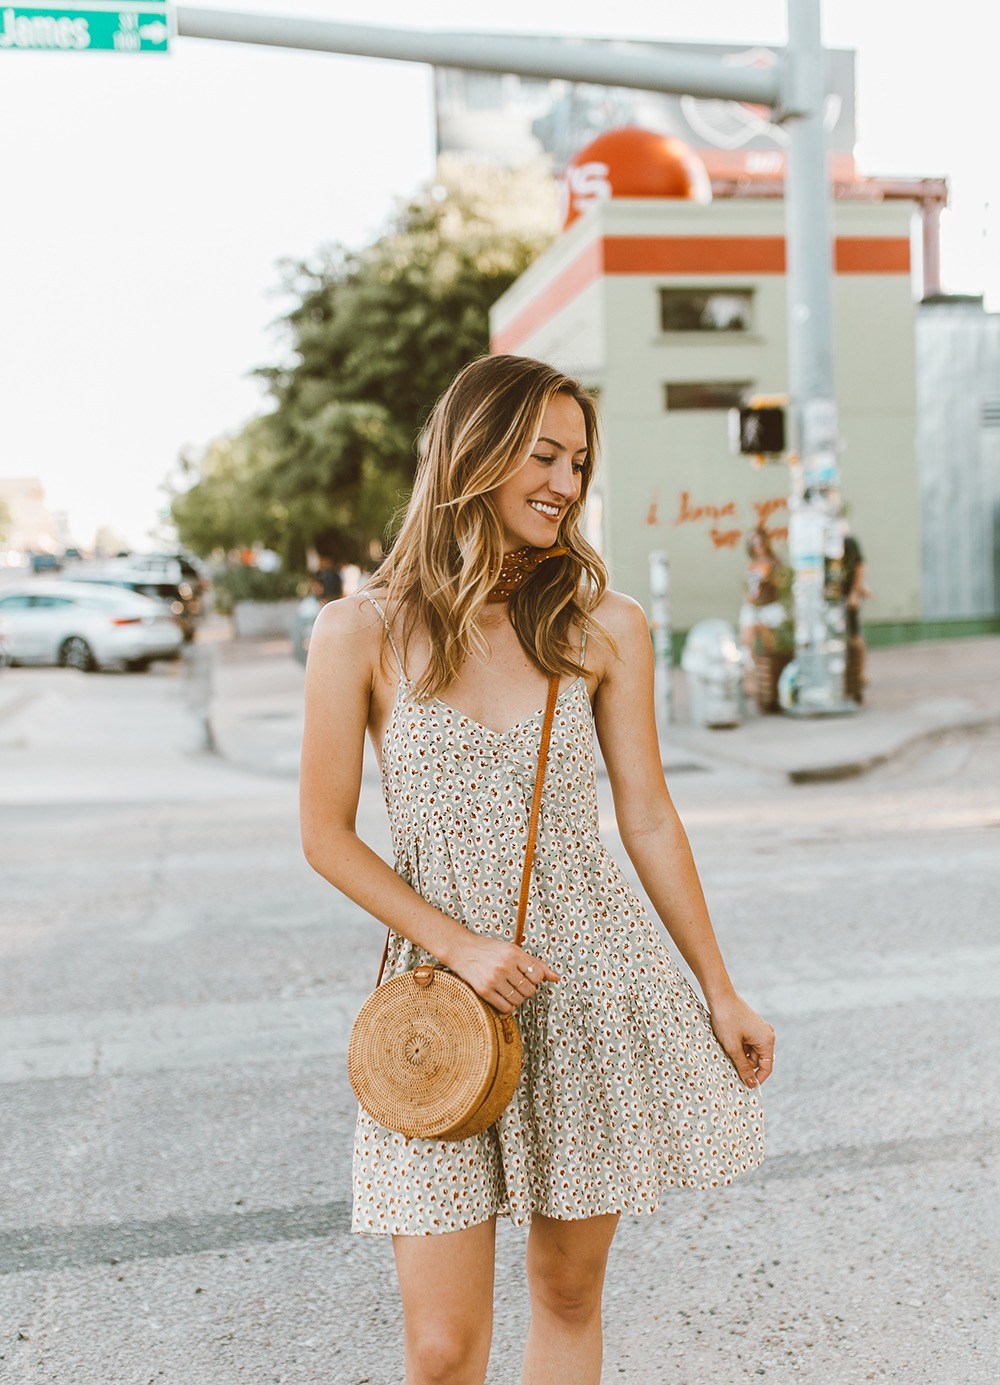 livvyland-blog-olivia-watson-south-congress-i-love-you-so-much-mural-urban-outfitters-harper-babydoll-floral-tie-back-dress-bandana-neck-1